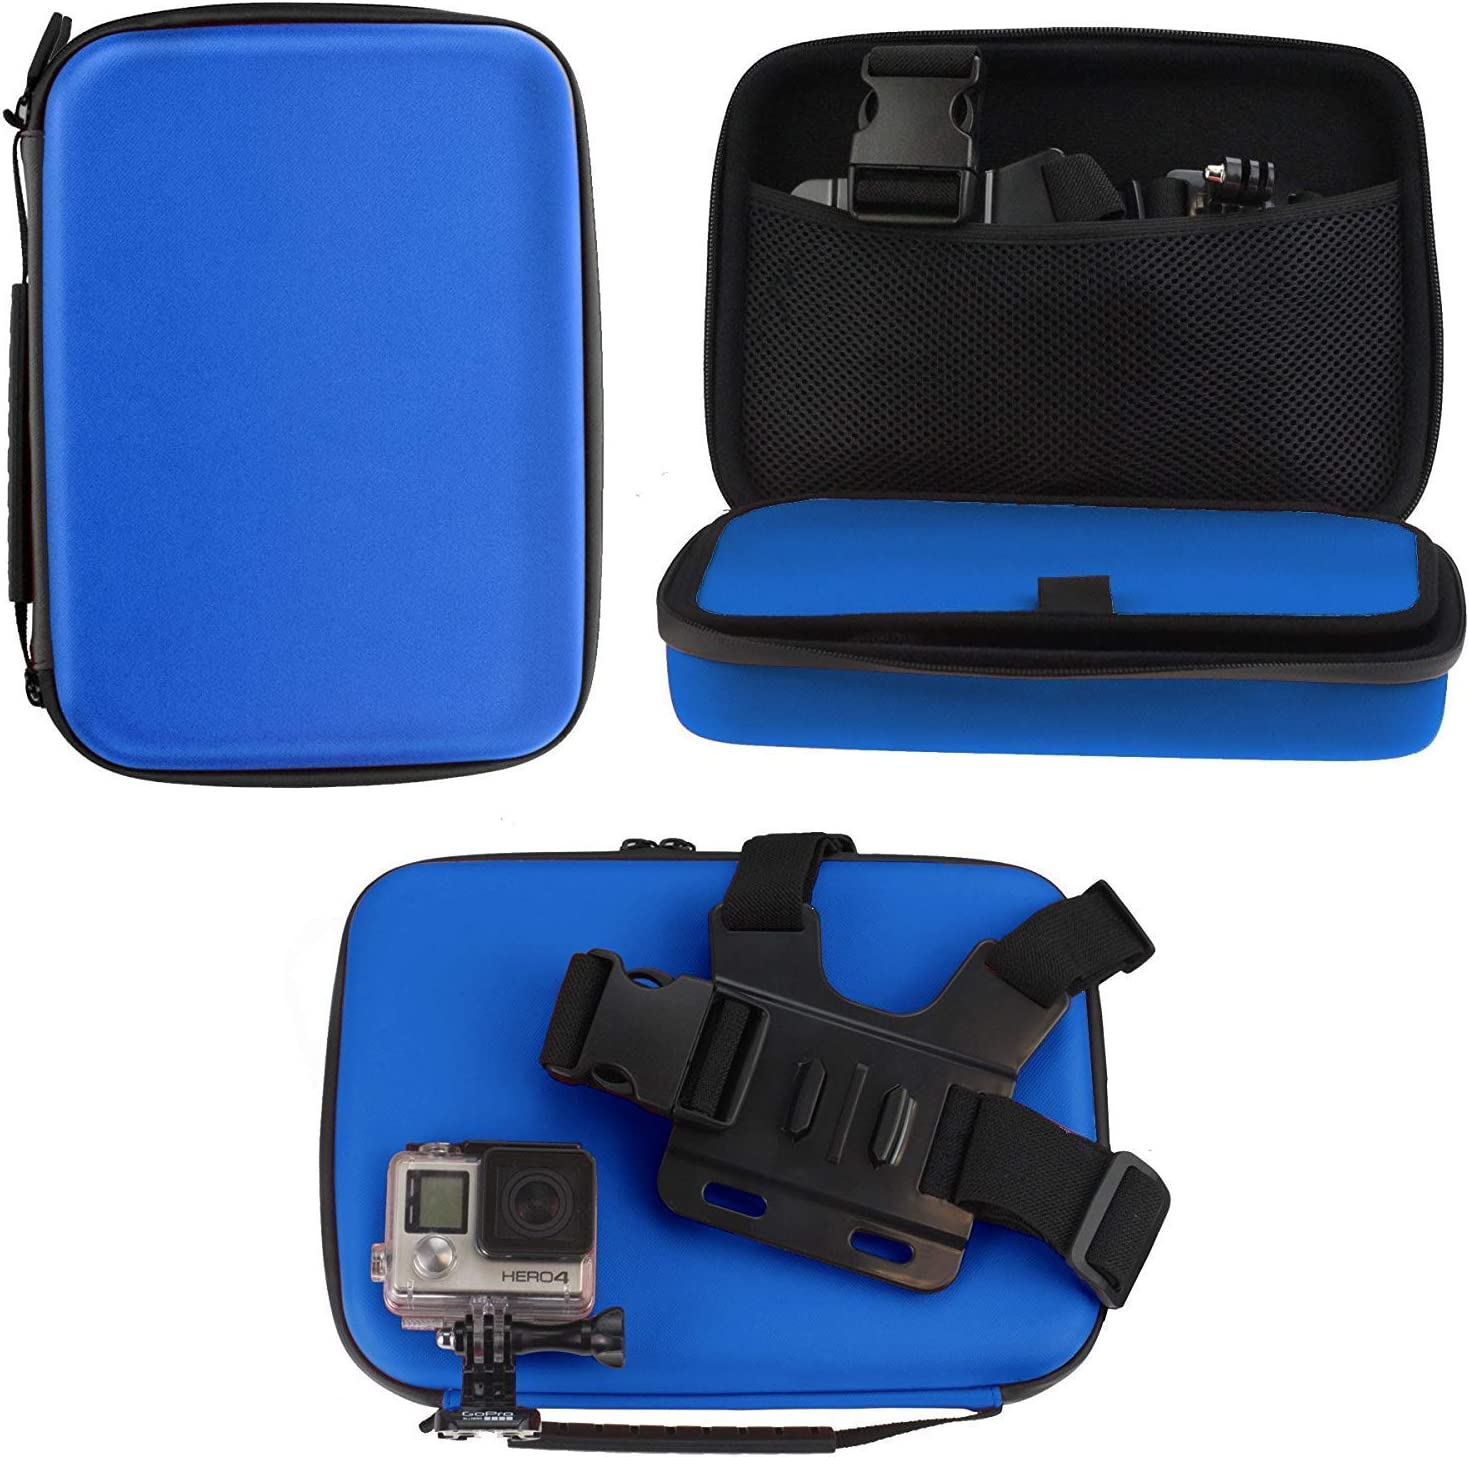 Navitech 9 in 1 Action Camera Accessory Combo Kit and Rugged Blue Storage Case Compatible with The YI 4K Action Camera